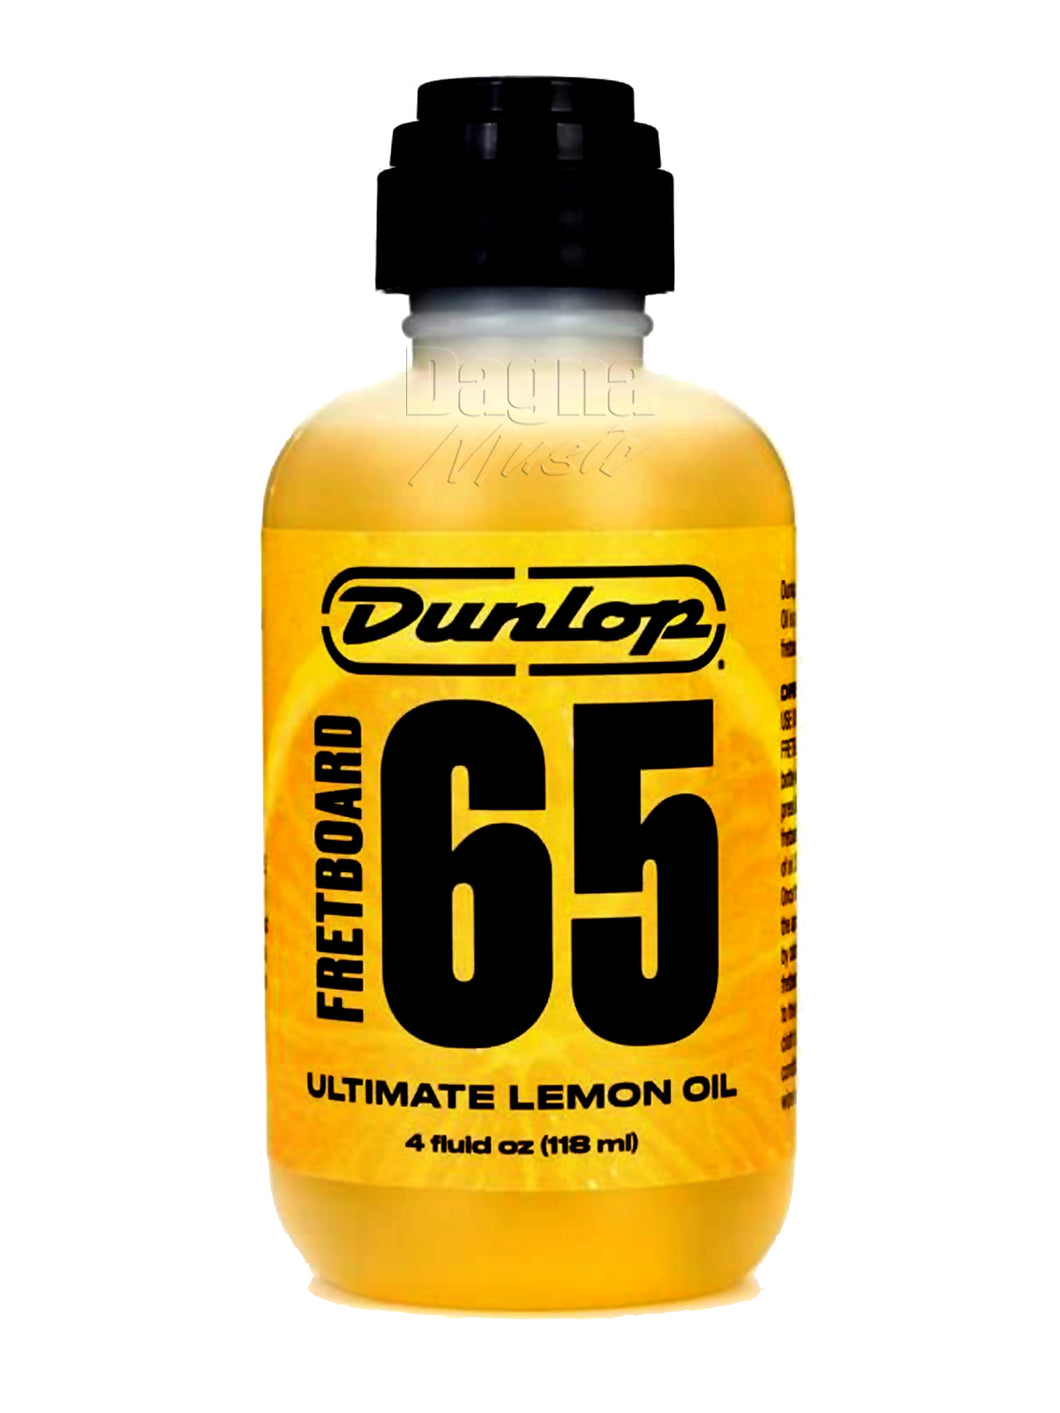 Dunlop 6554 Lemon Oil